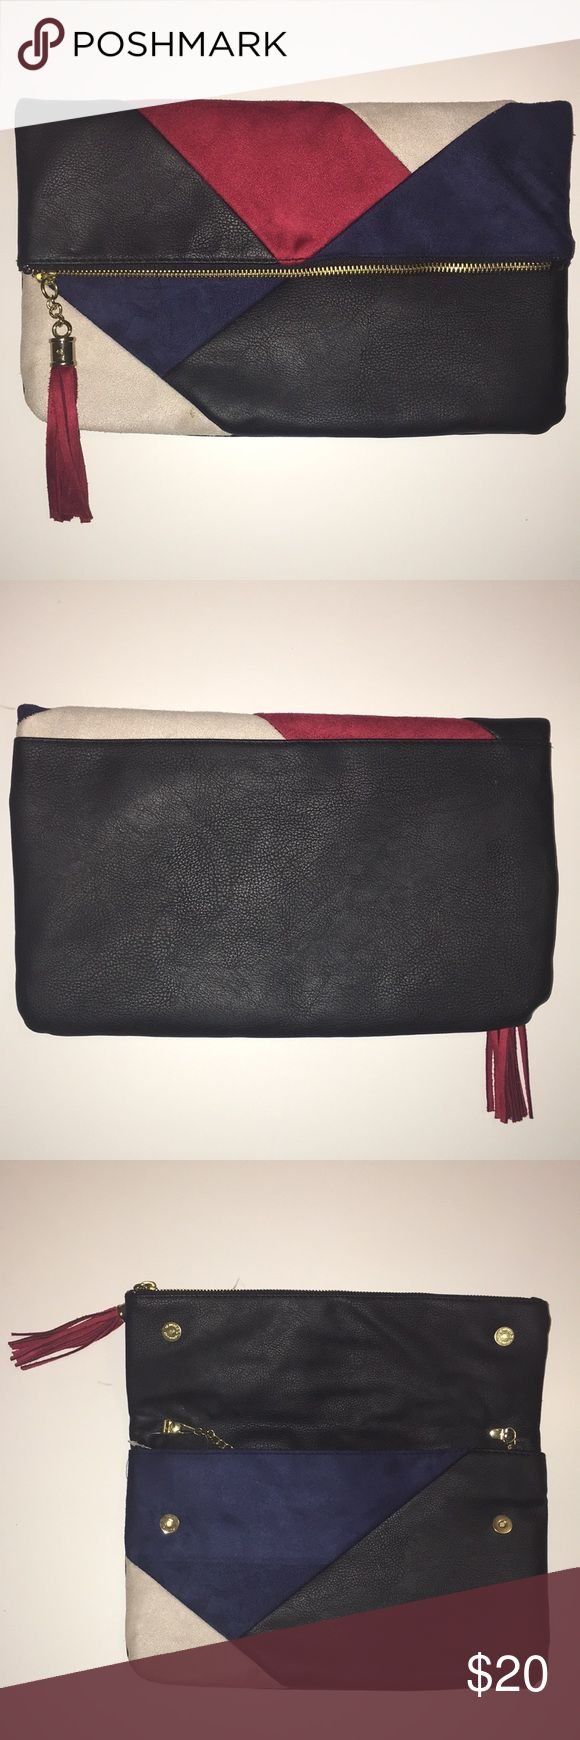 Crossbody purse/clutch Red, Black, Navy Blue, and White clutch that doubles as a crossbody purse. Has a lot of space for storing items. Black parts are faux leather. Red, Navy Blue, and White areas are faux suede. Red tassel adds super cute detailing. Bags Shoulder Bags